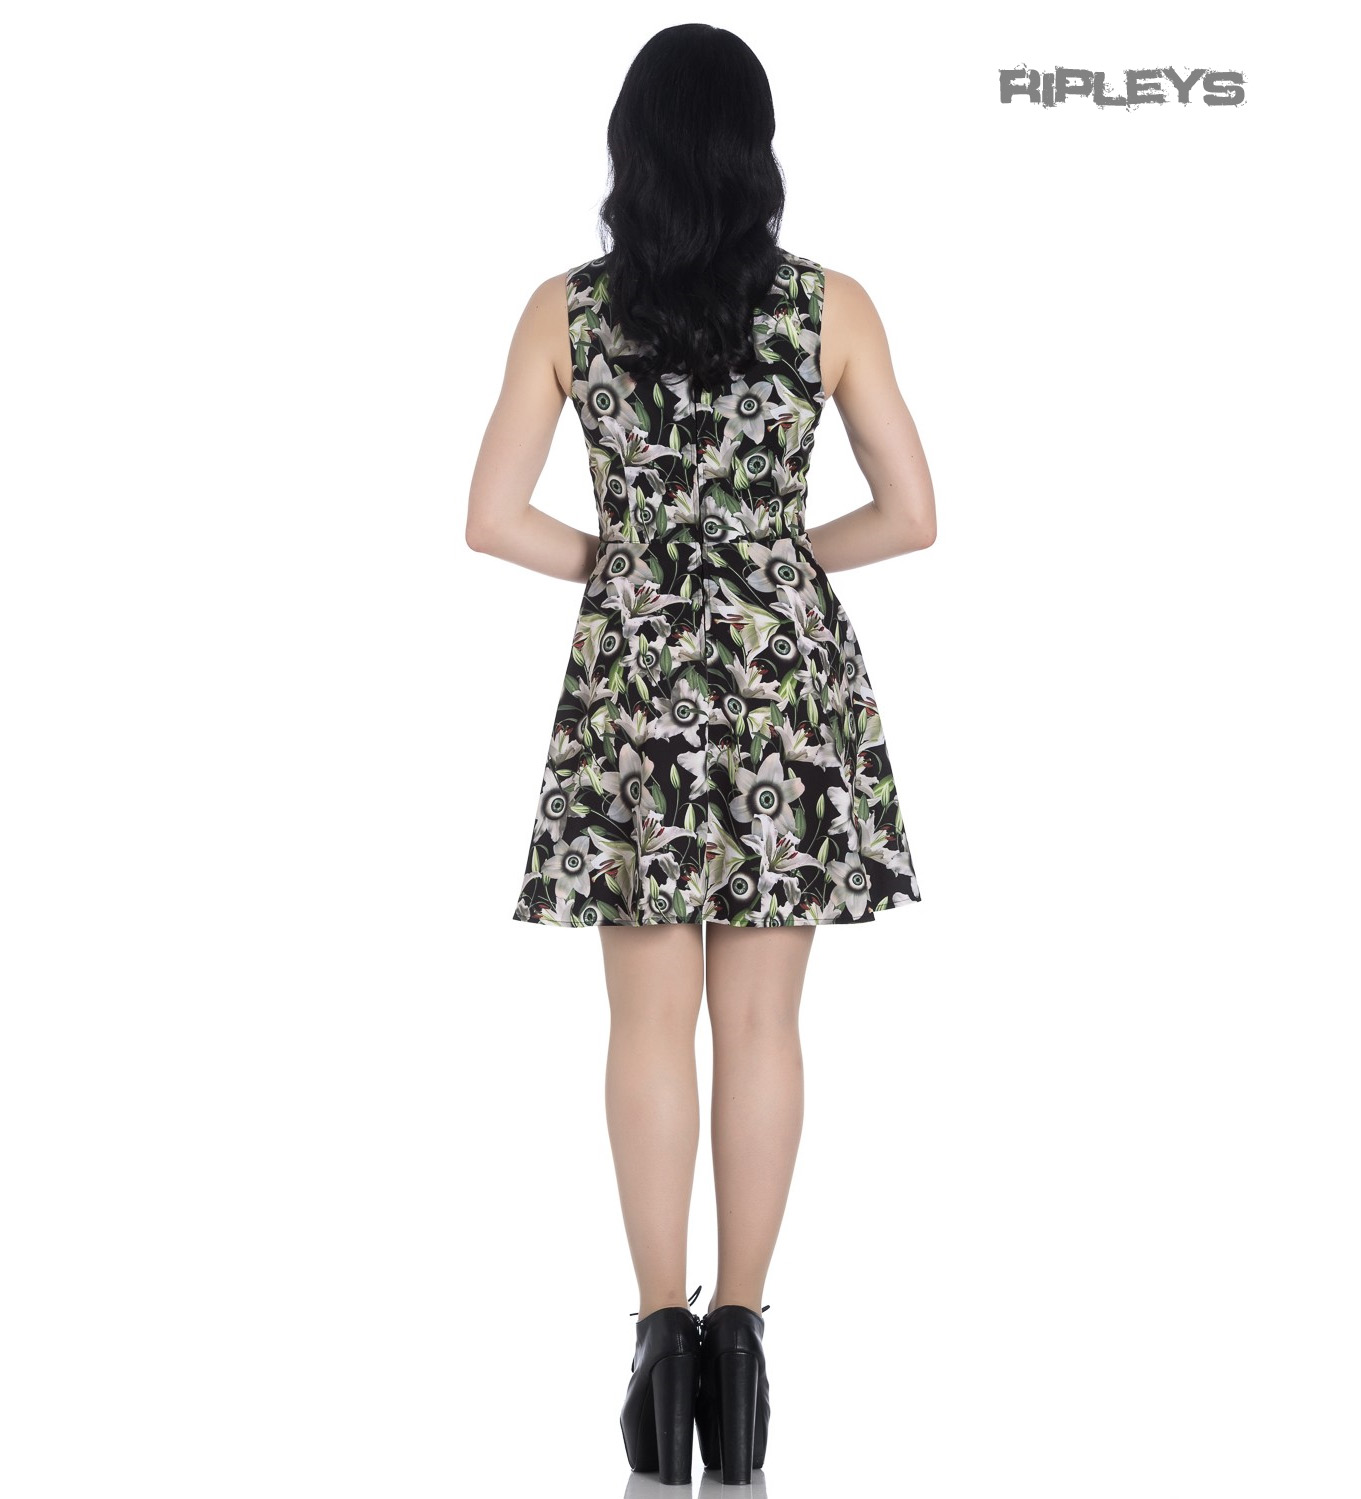 Hell-Bunny-Black-Lace-Up-Goth-Punk-Mini-Dress-PEEPERS-Eyeballs-Flowers-All-Sizes thumbnail 18